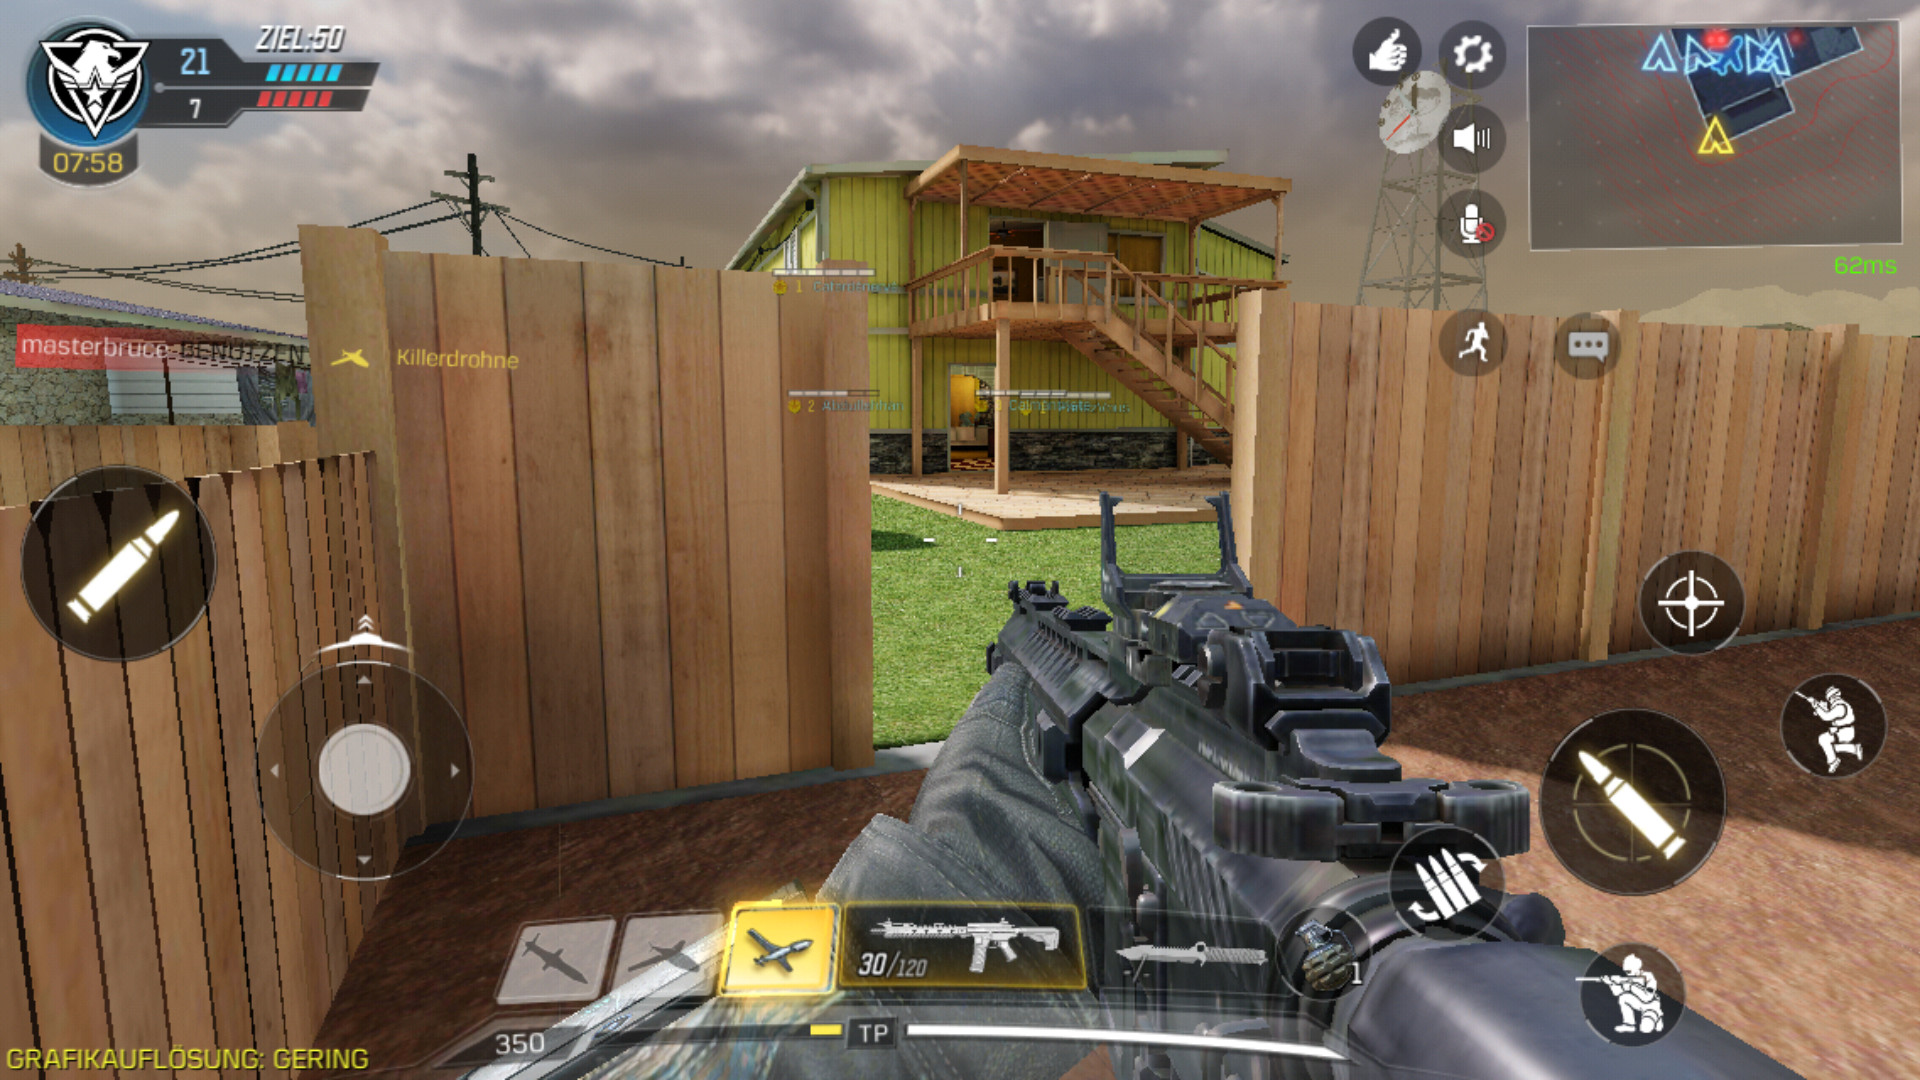 Screenshot 1 - Call of Duty: Mobile (App für iPhone & iPad)